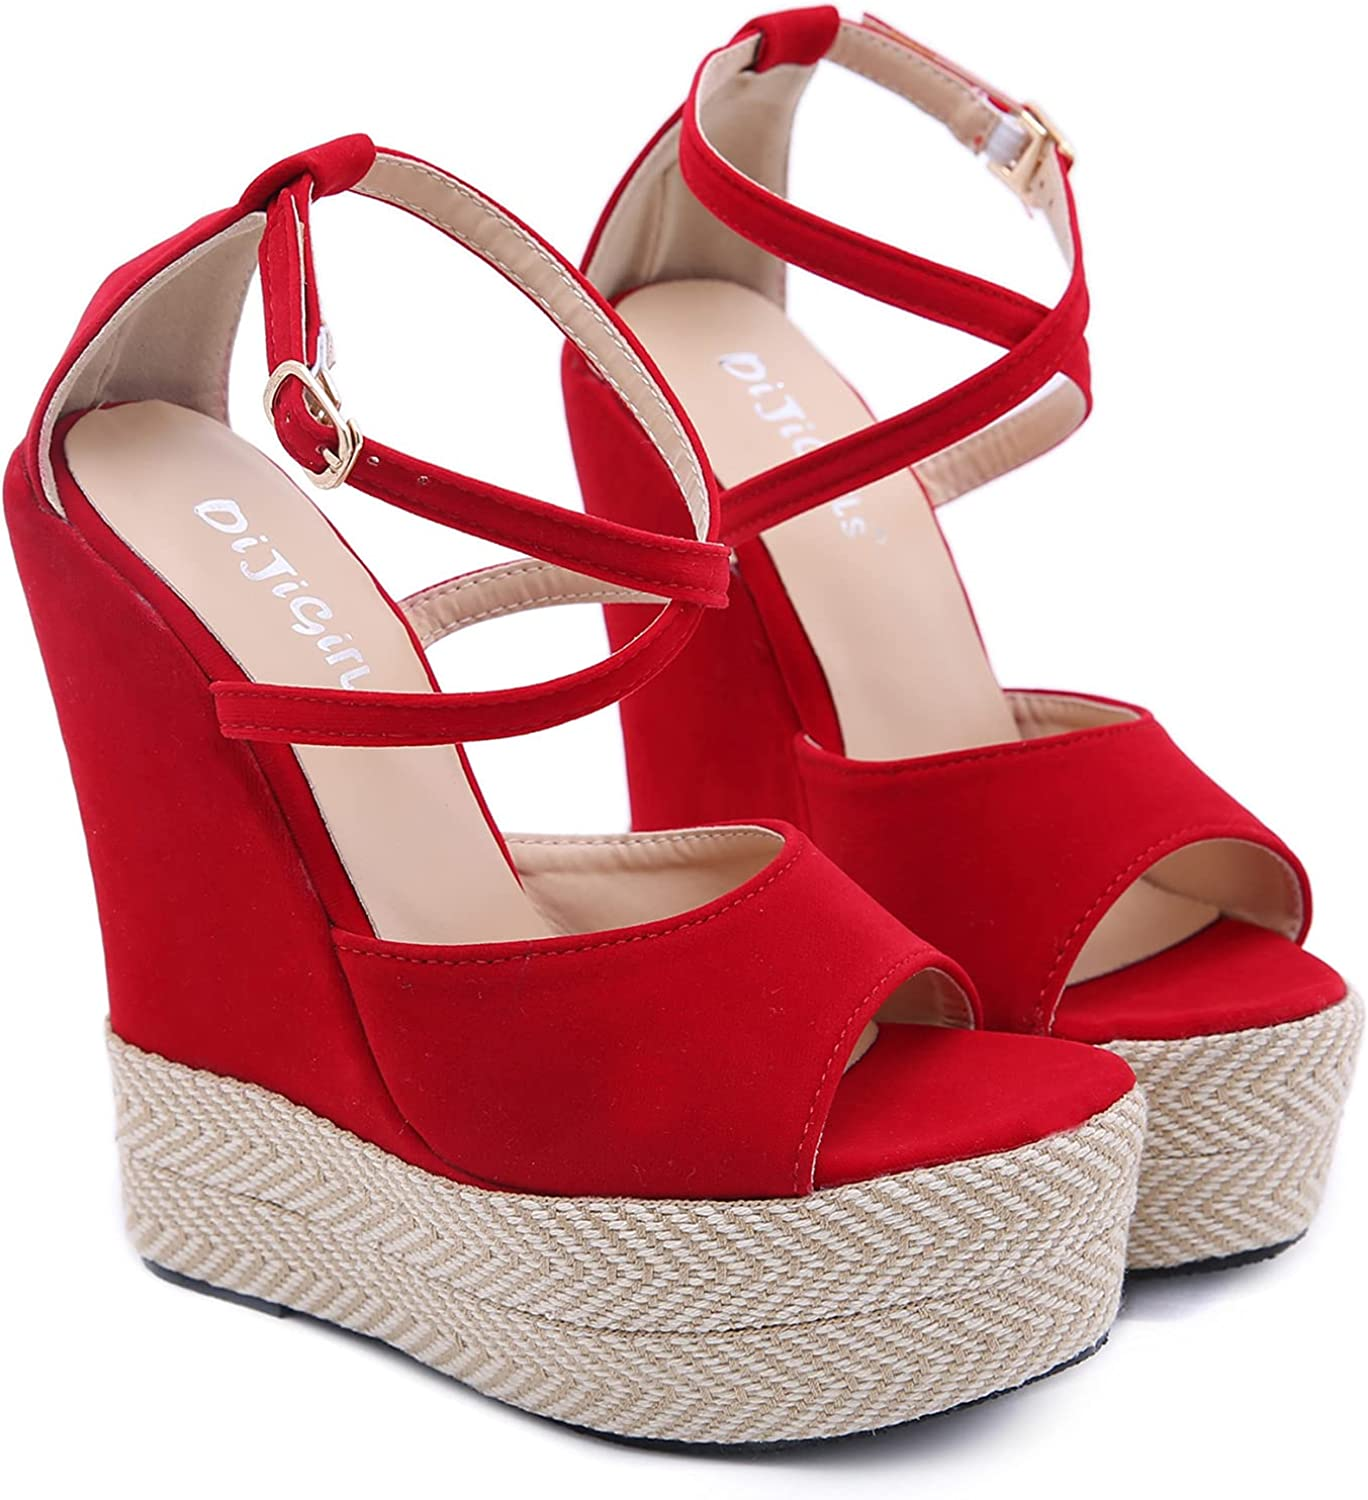 Women Wedges Sandals Ranking integrated 1st place Chunky Heel Elegant Popular Fashion Buckle Ankle St